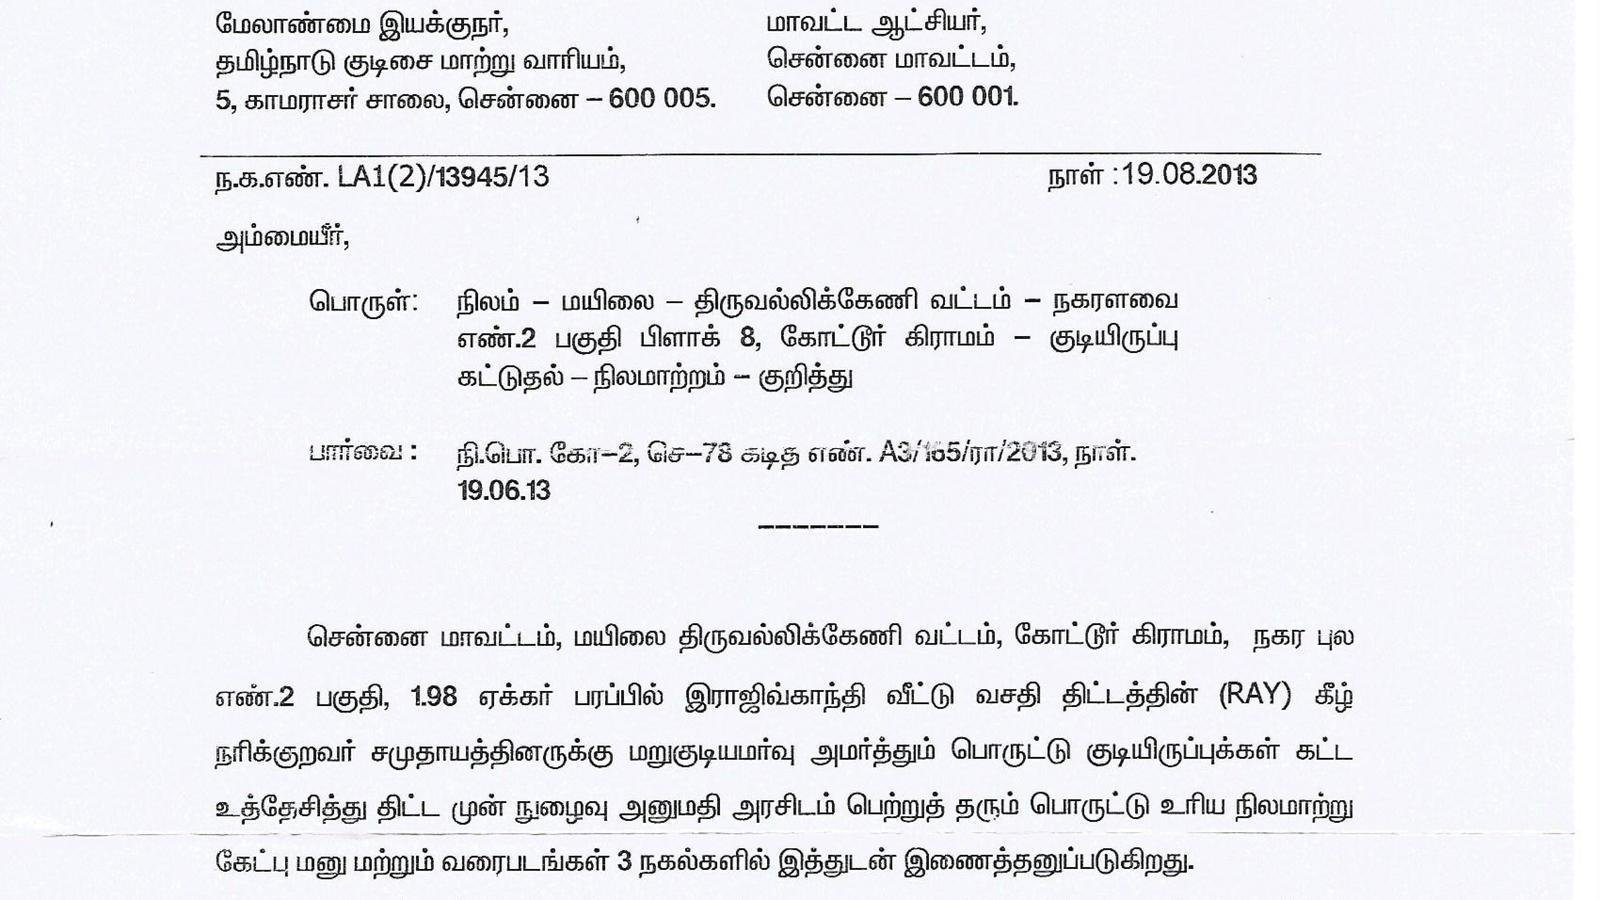 Petition the district collector chennai tamil nadu the managing petition the district collector chennai tamil nadu the managing director tamil nadu slum clearance board the secretary to government altavistaventures Image collections